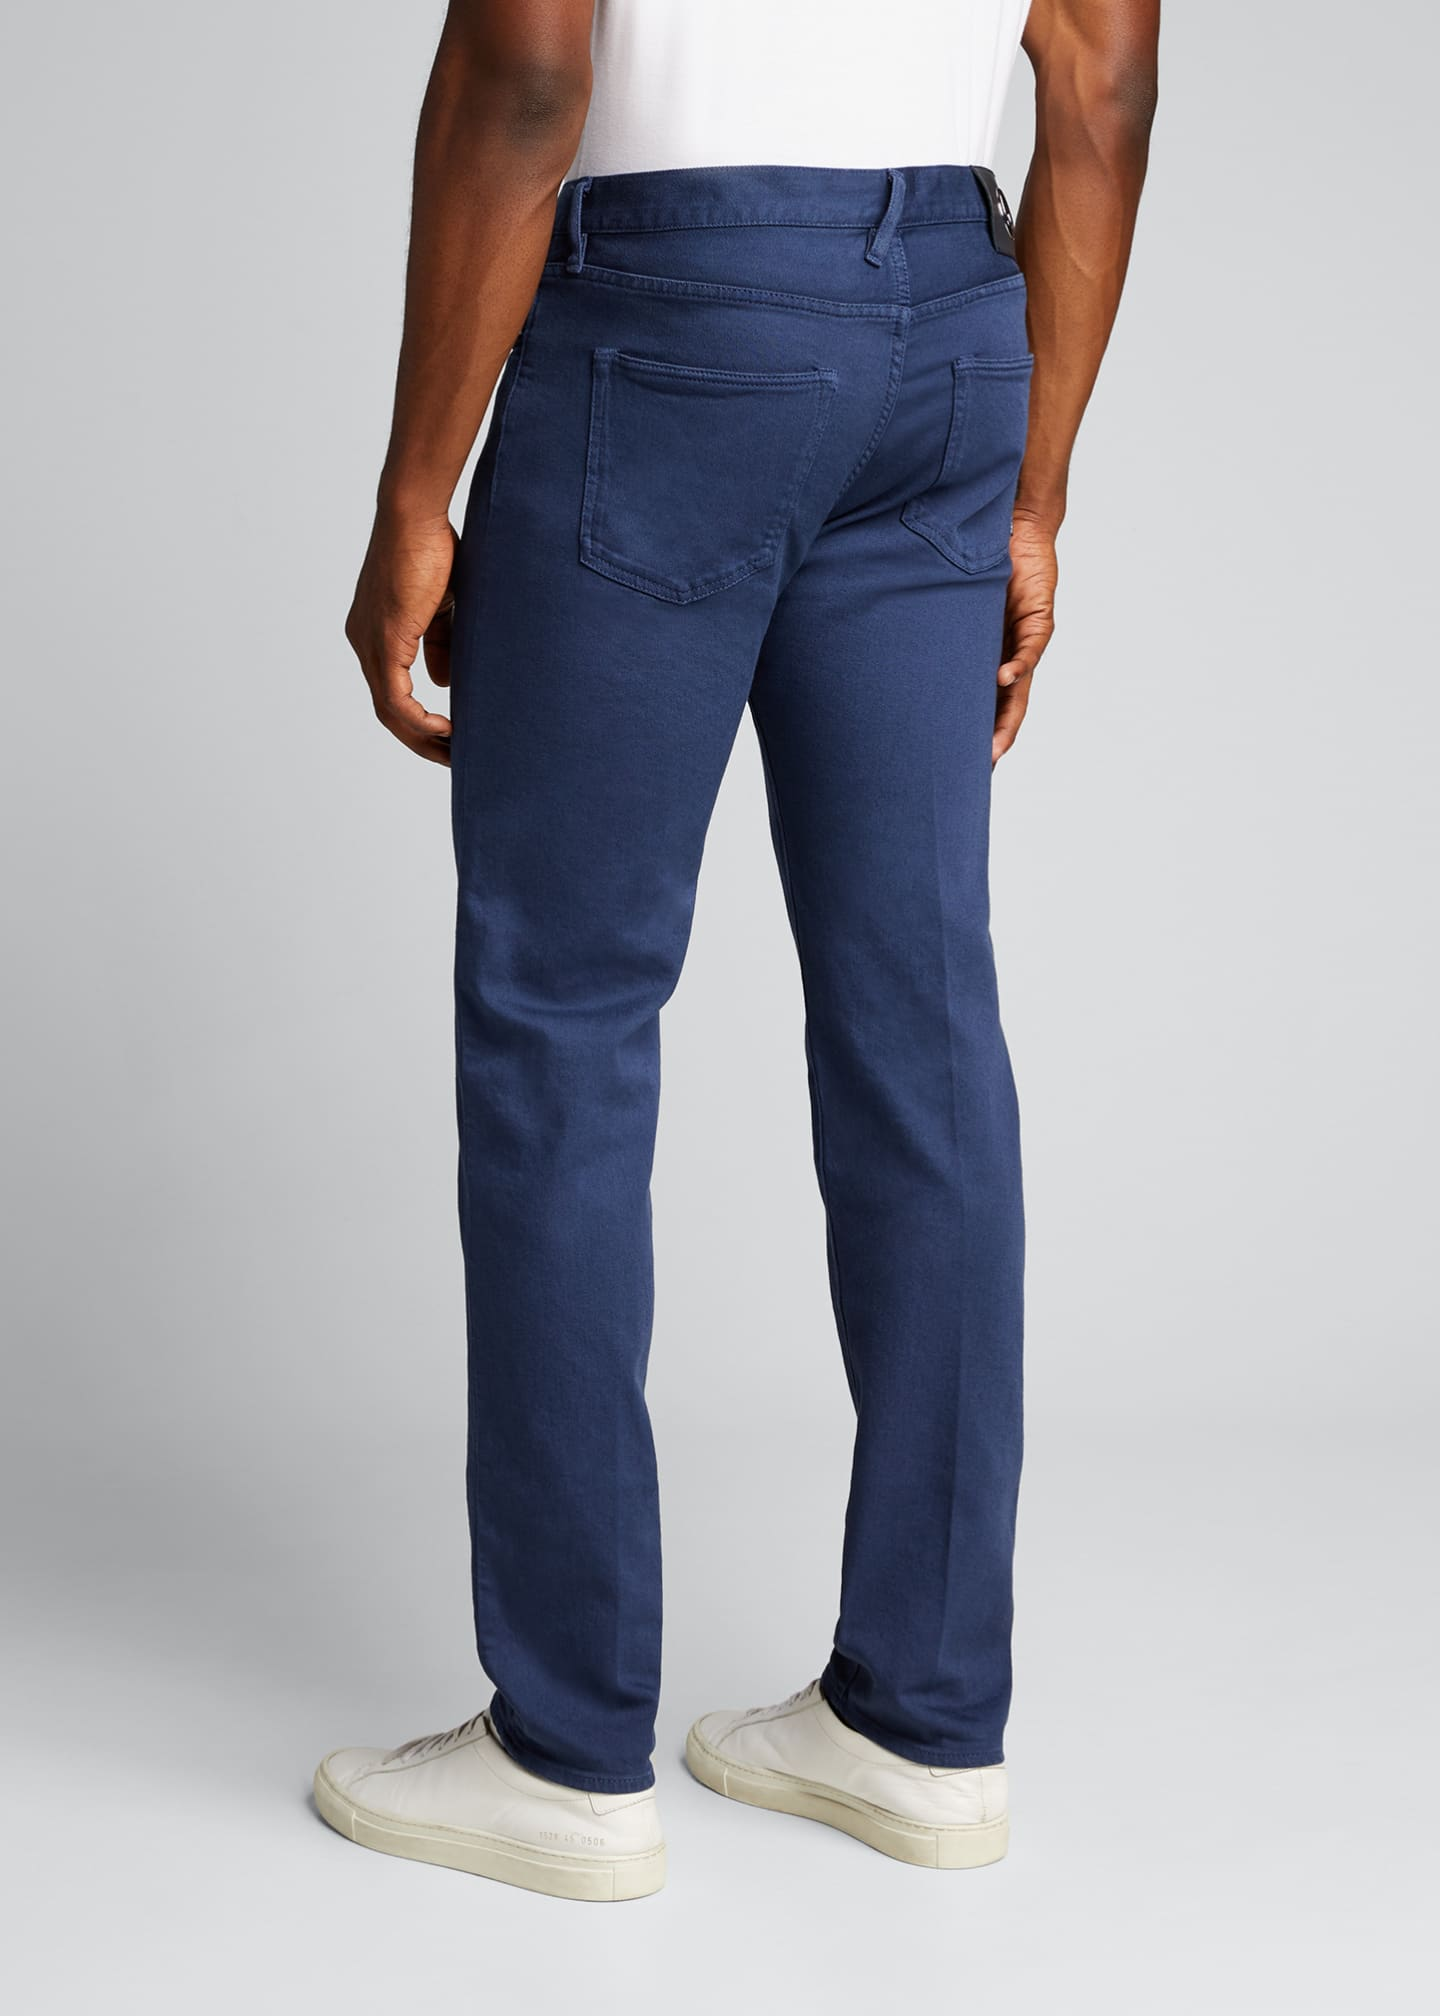 Image 2 of 5: Men's Relaxed Slim Five-Pocket Jeans